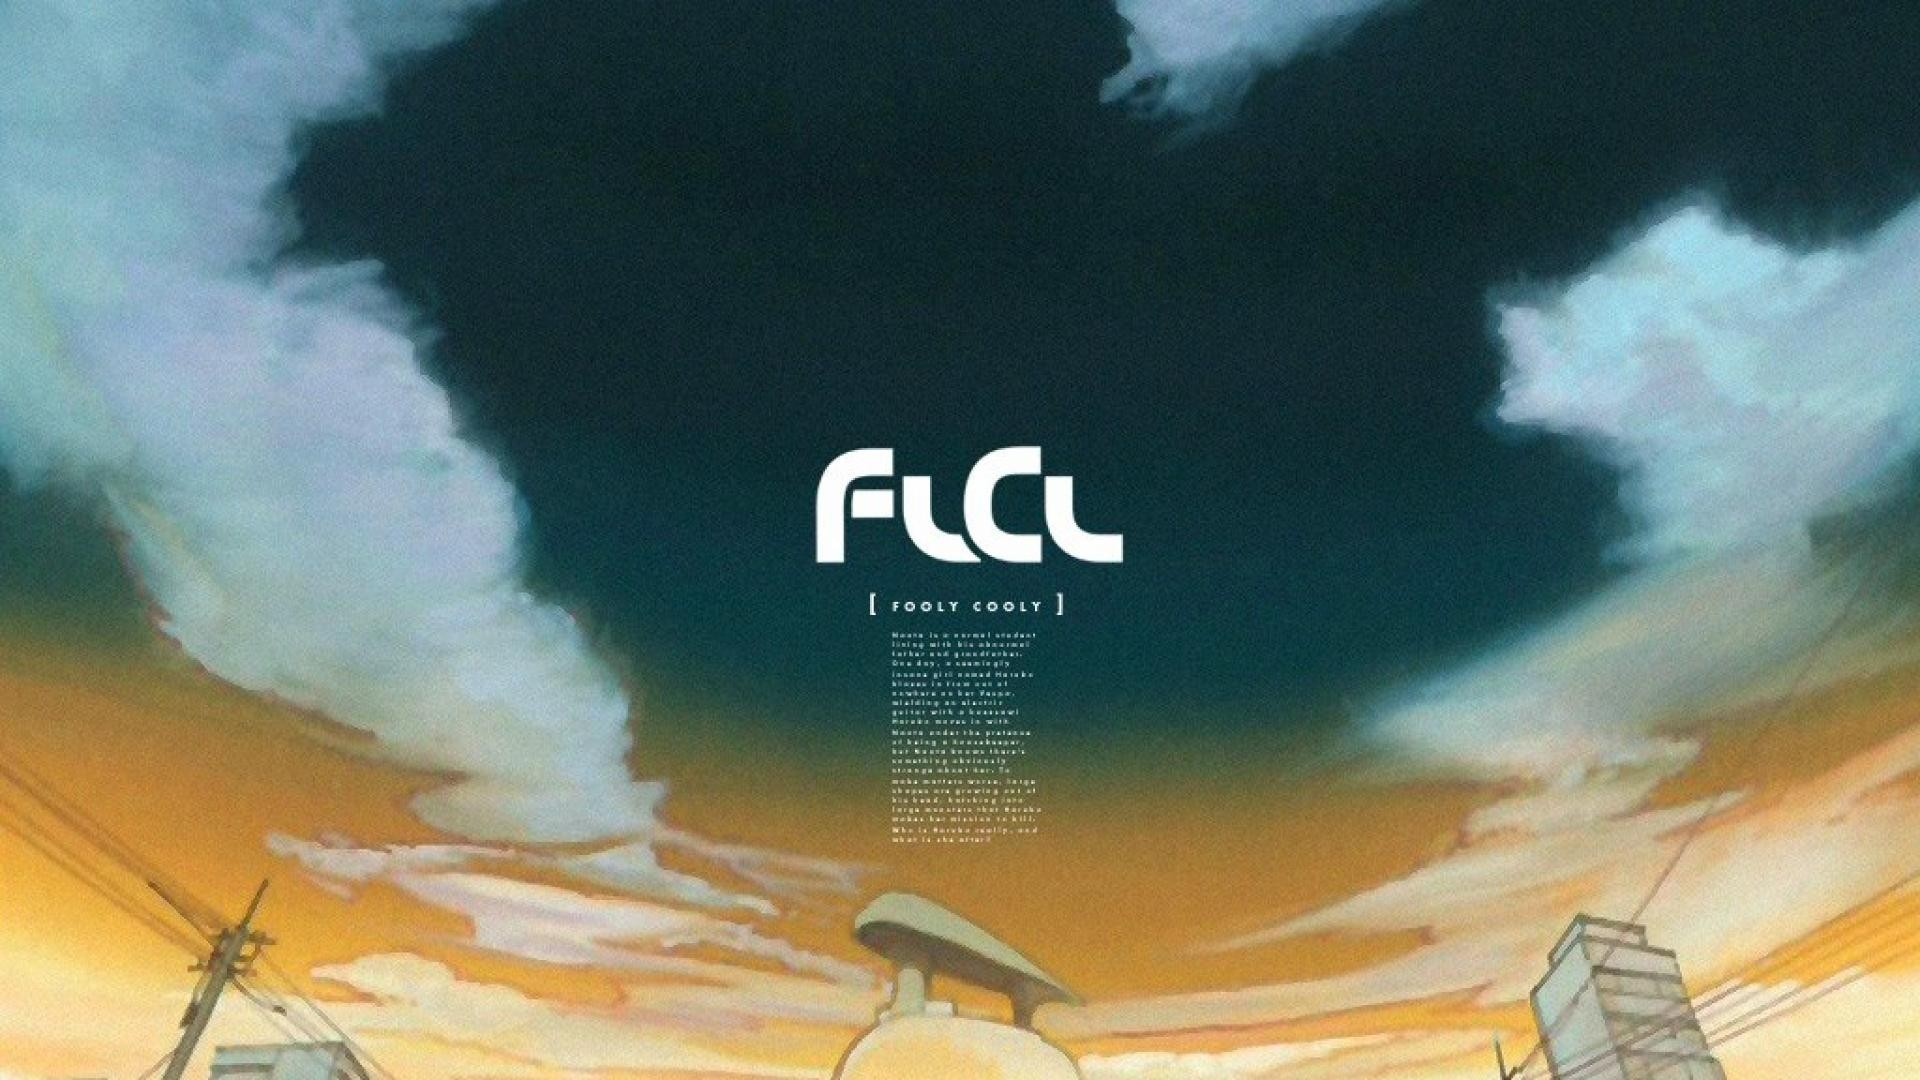 1920x1080 0 2560x1600 FLCL Wallpapers  FLCL Wallpapers HD Desktop and Mobile  Backgroun